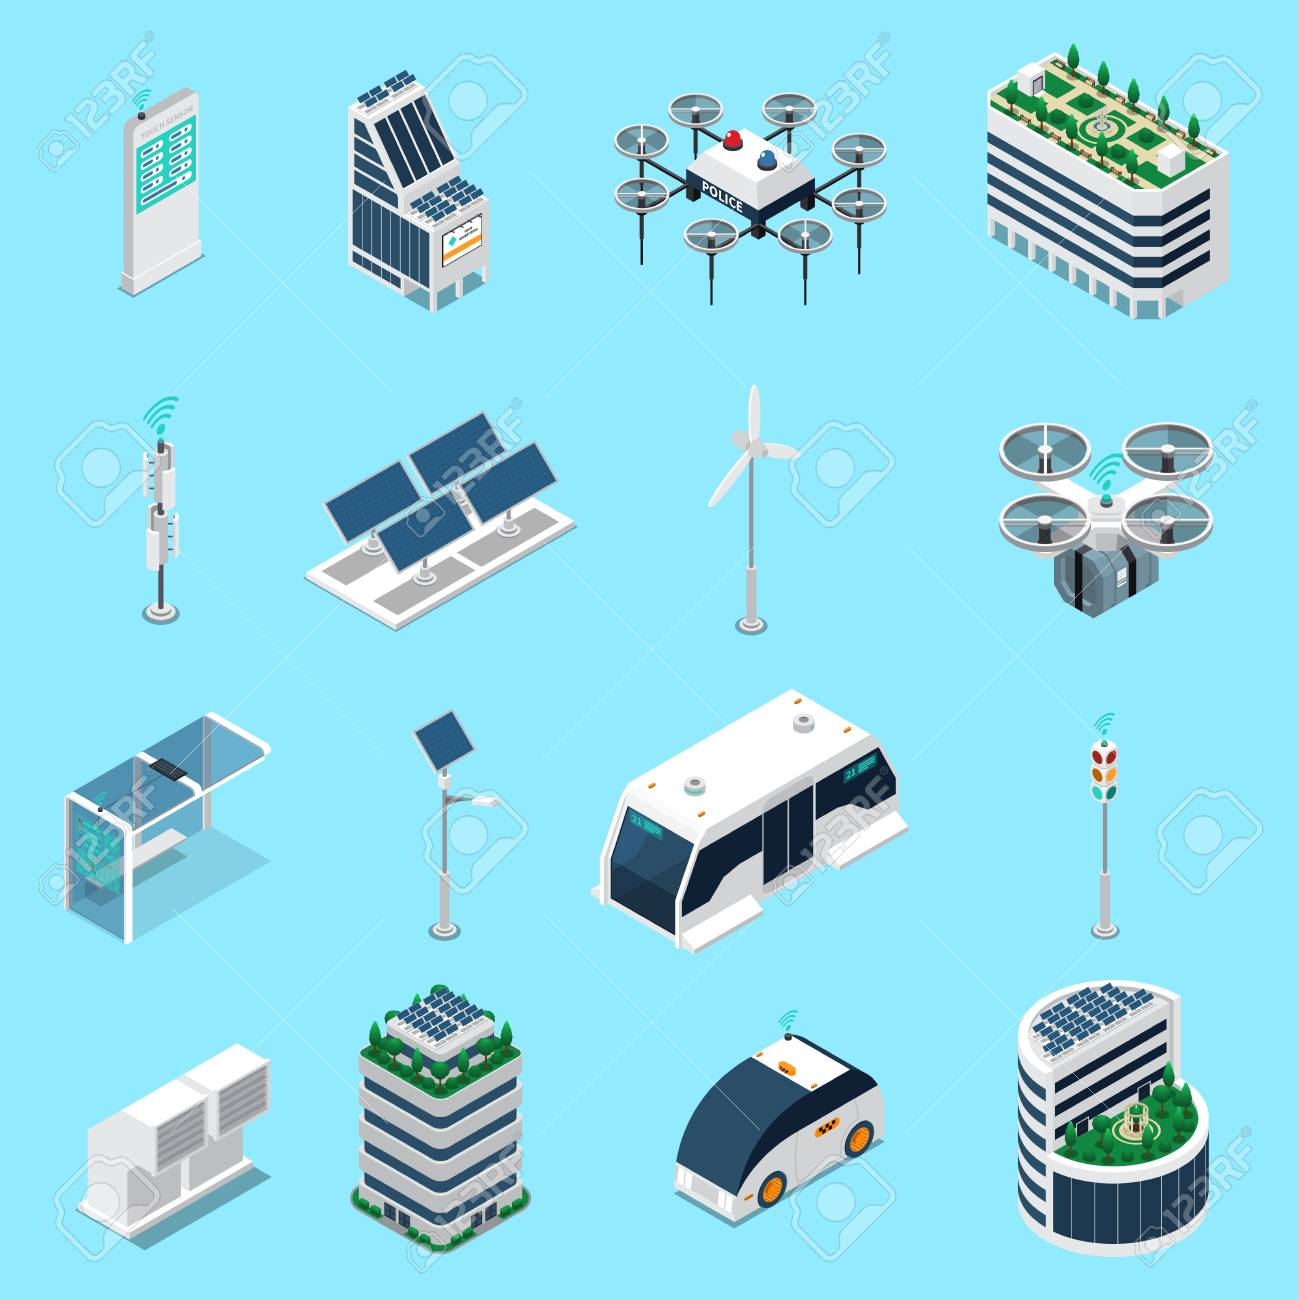 Smart city isometric icons set with transport and solar power symbols isolated vector illustration - 106211965